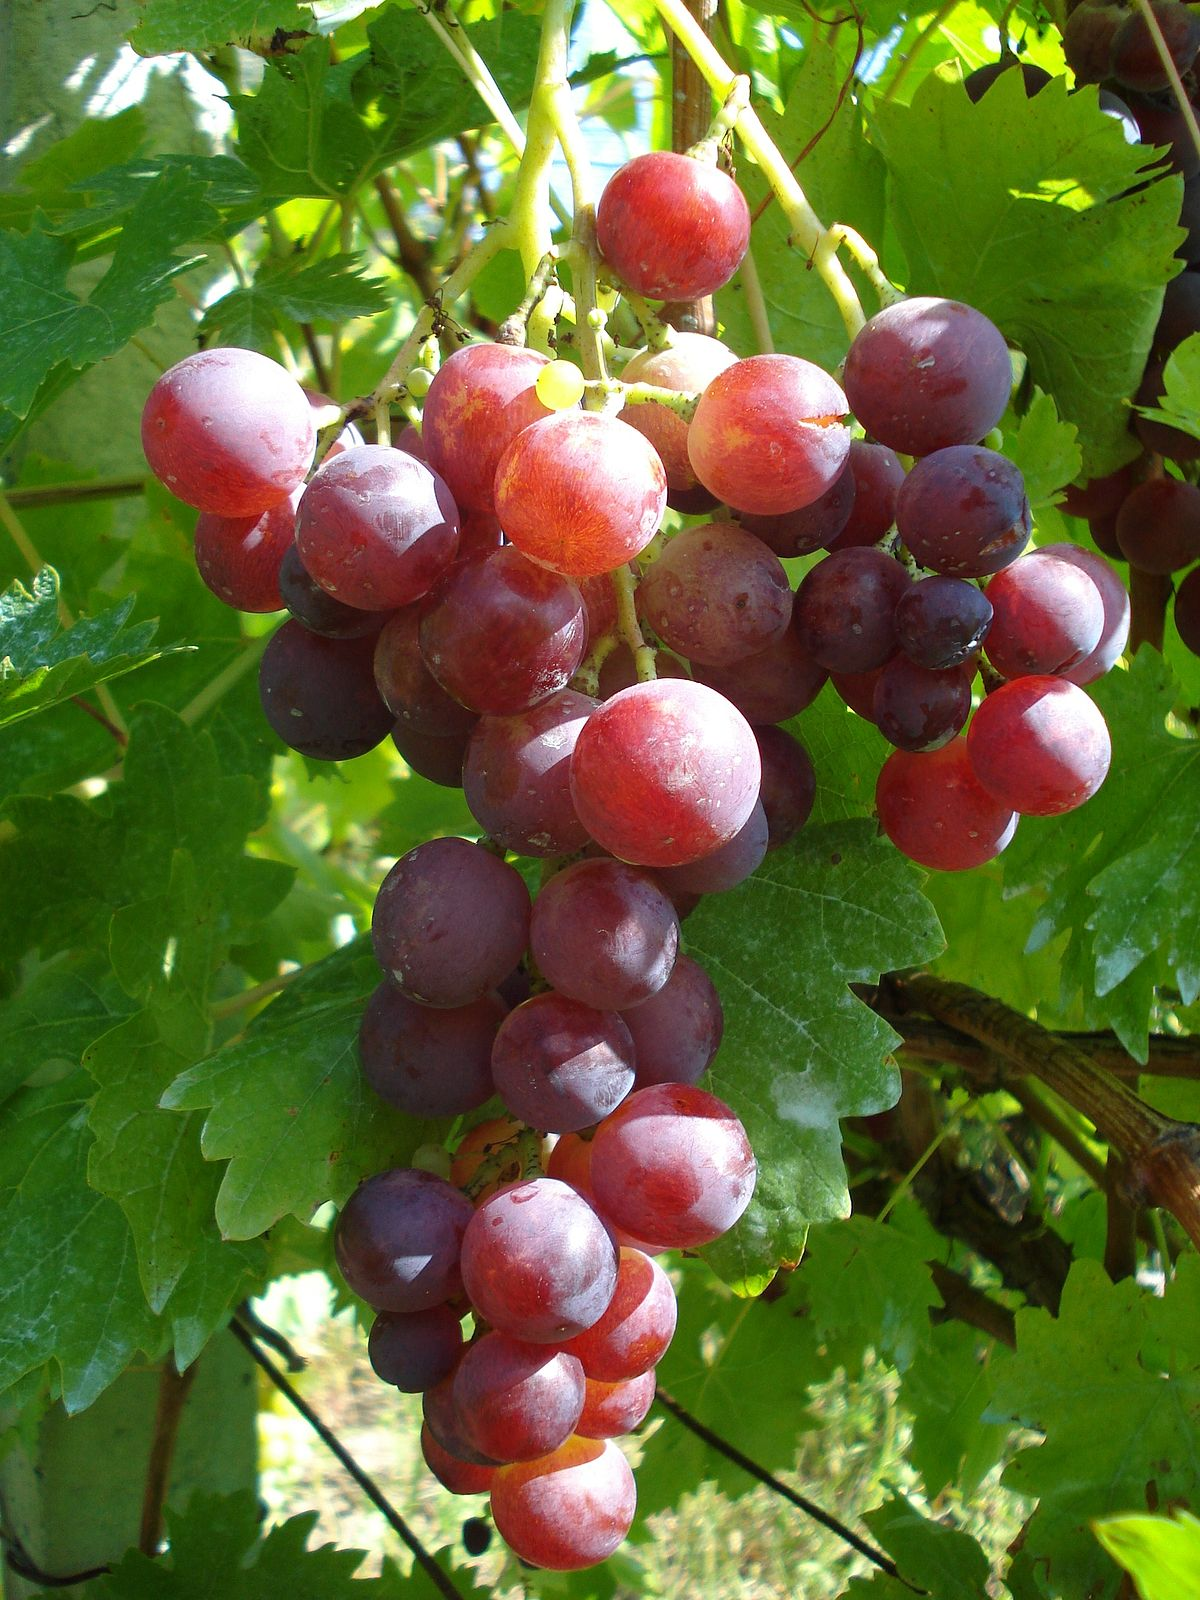 Cardinal grape wikipedia for Table grapes